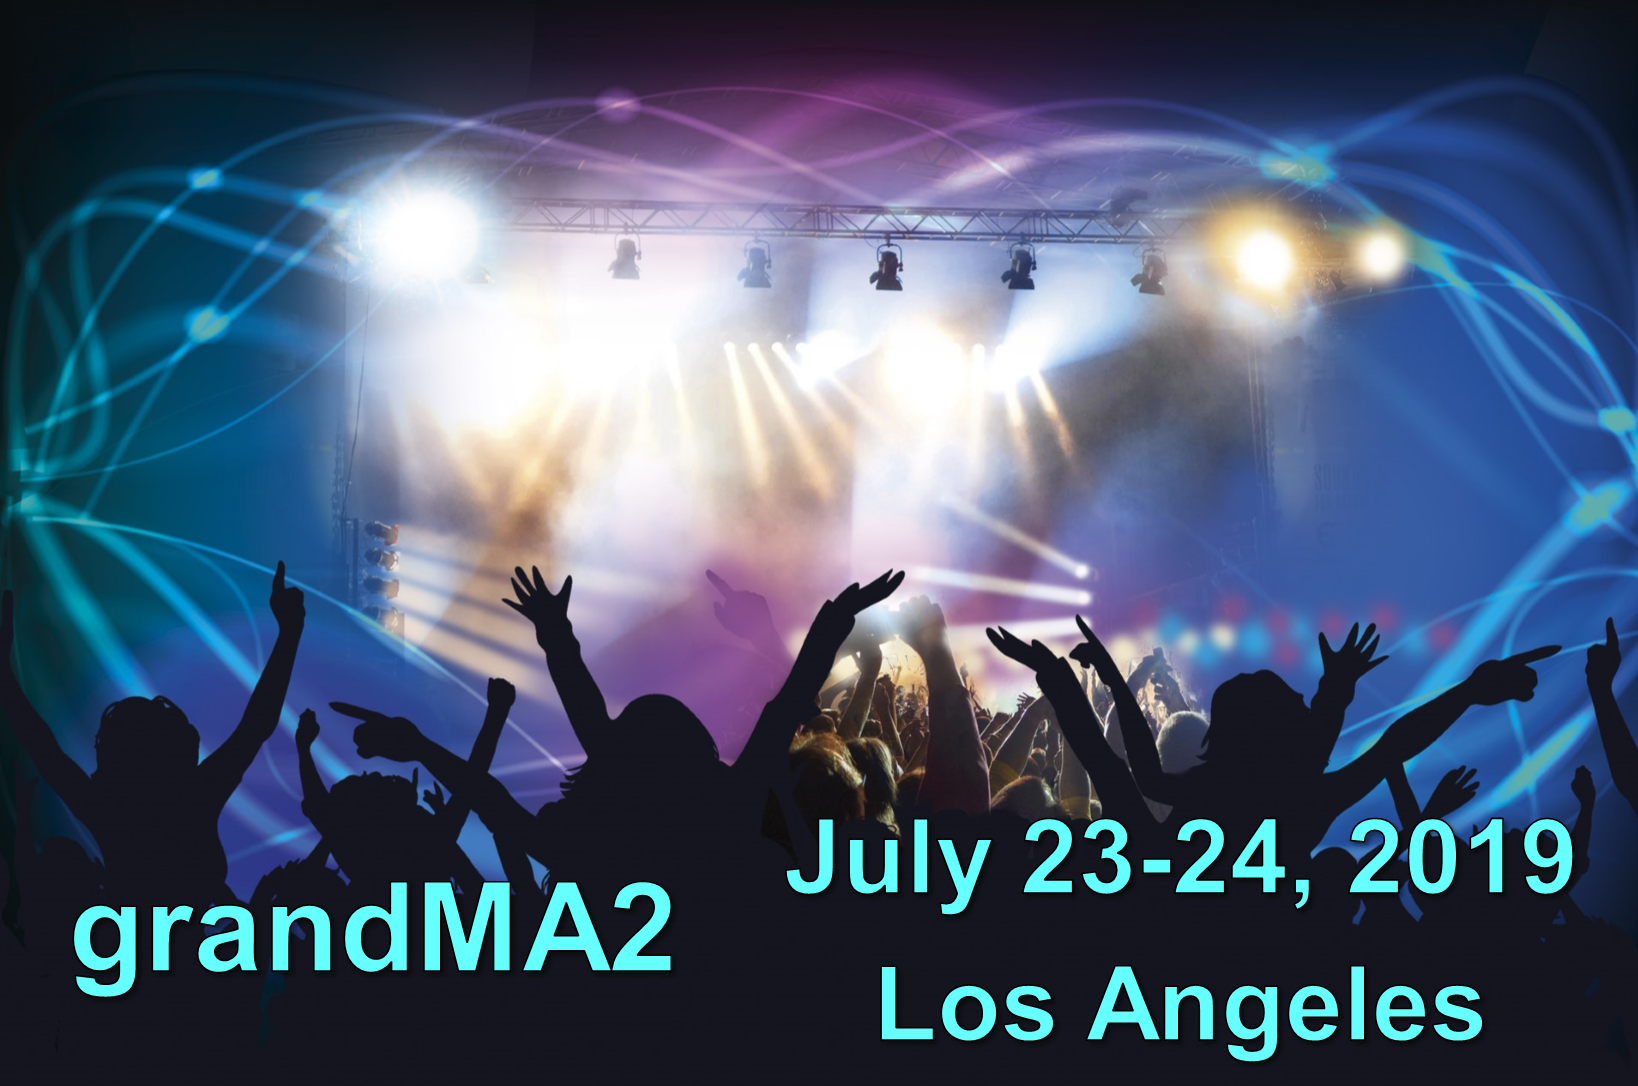 grandMA2 Class - July 23-24, 2019 - Los Angeles - SOLD OUT